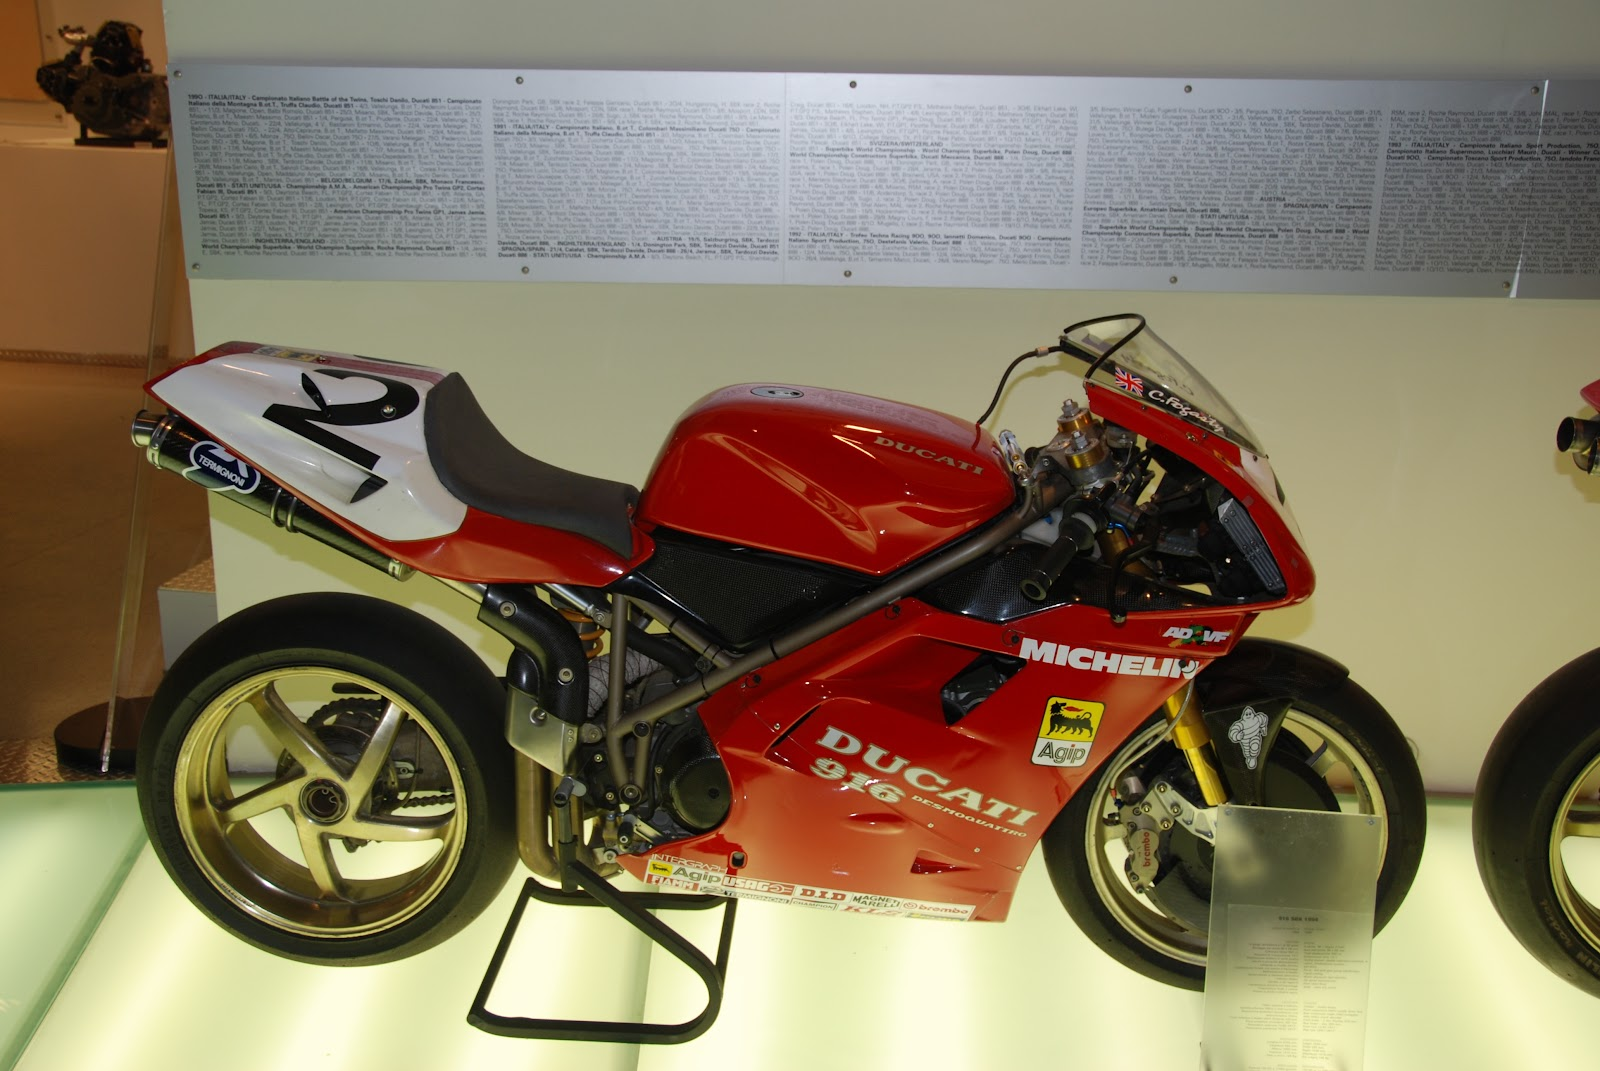 Italy Motorcycle Factory Tours